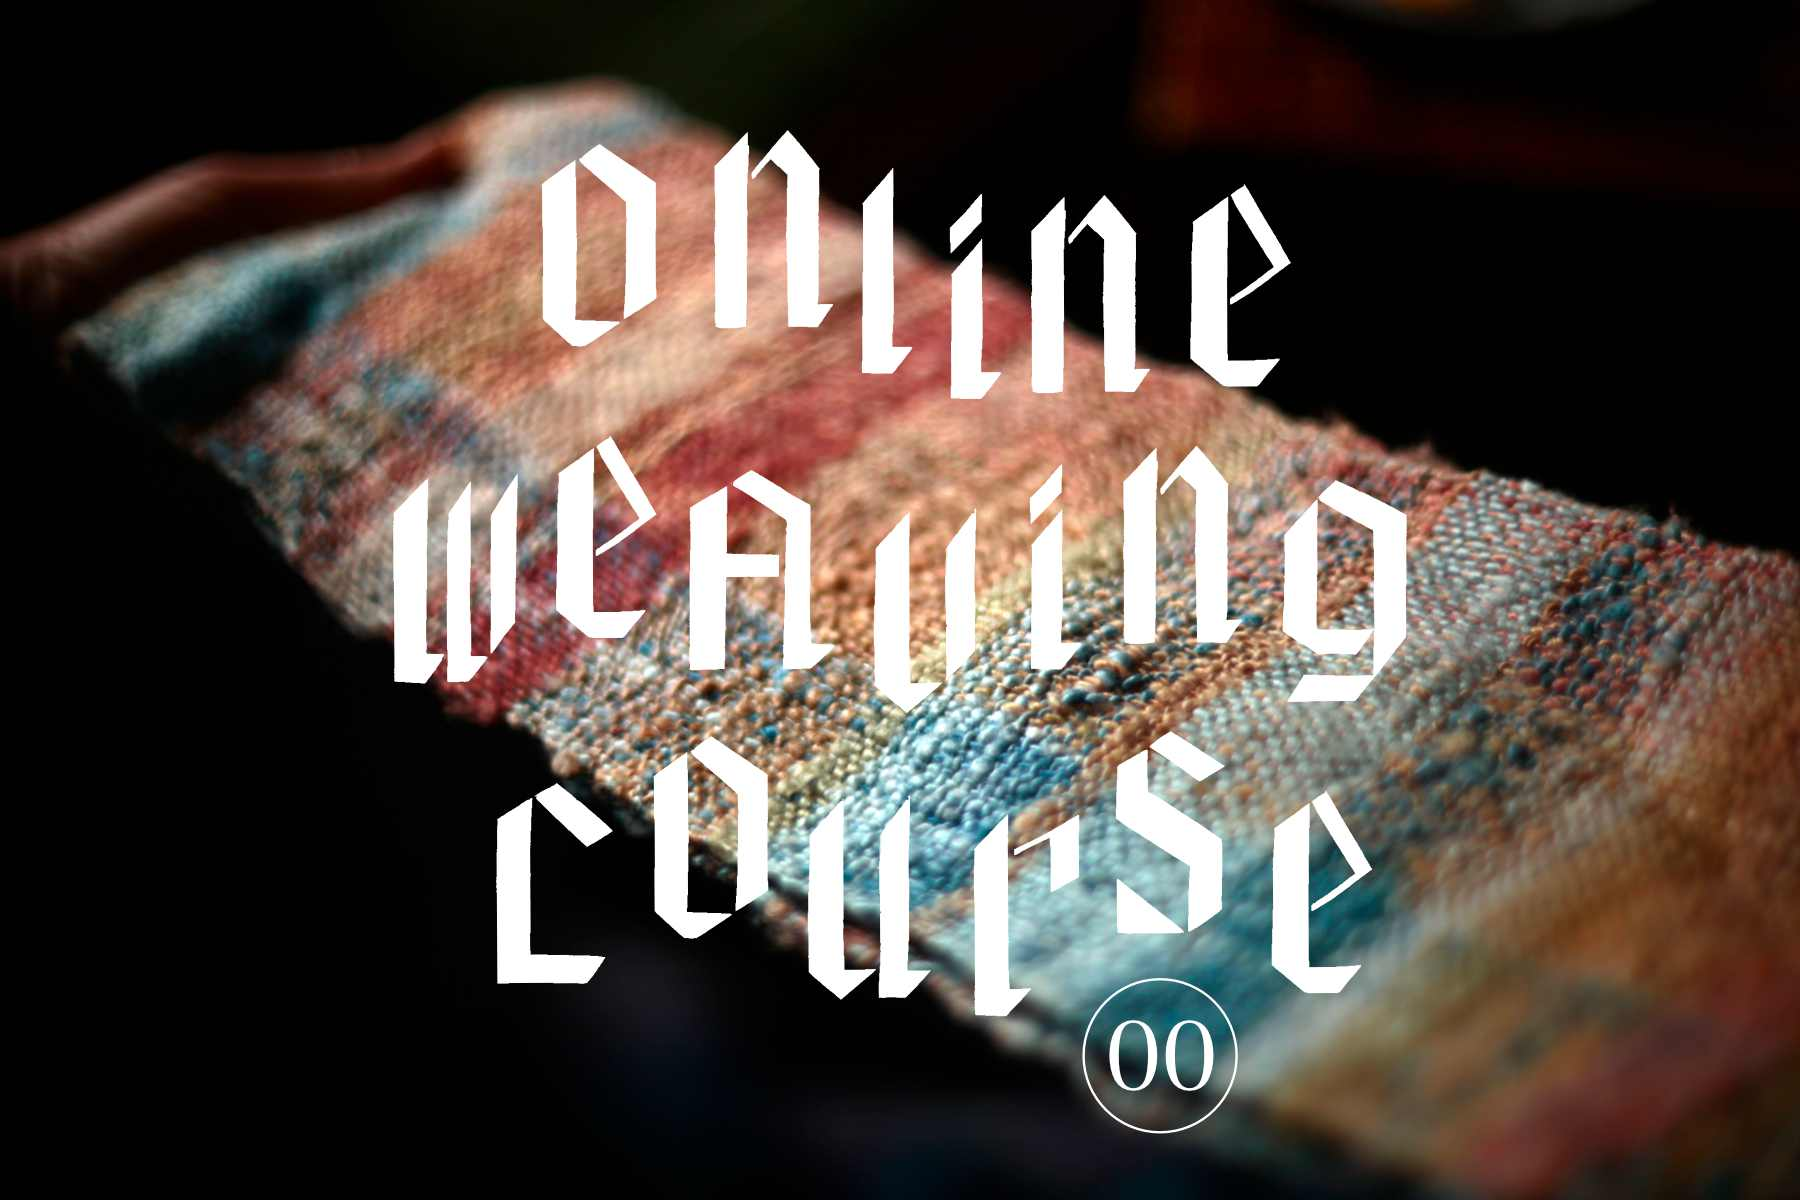 Online Weaving Course 00